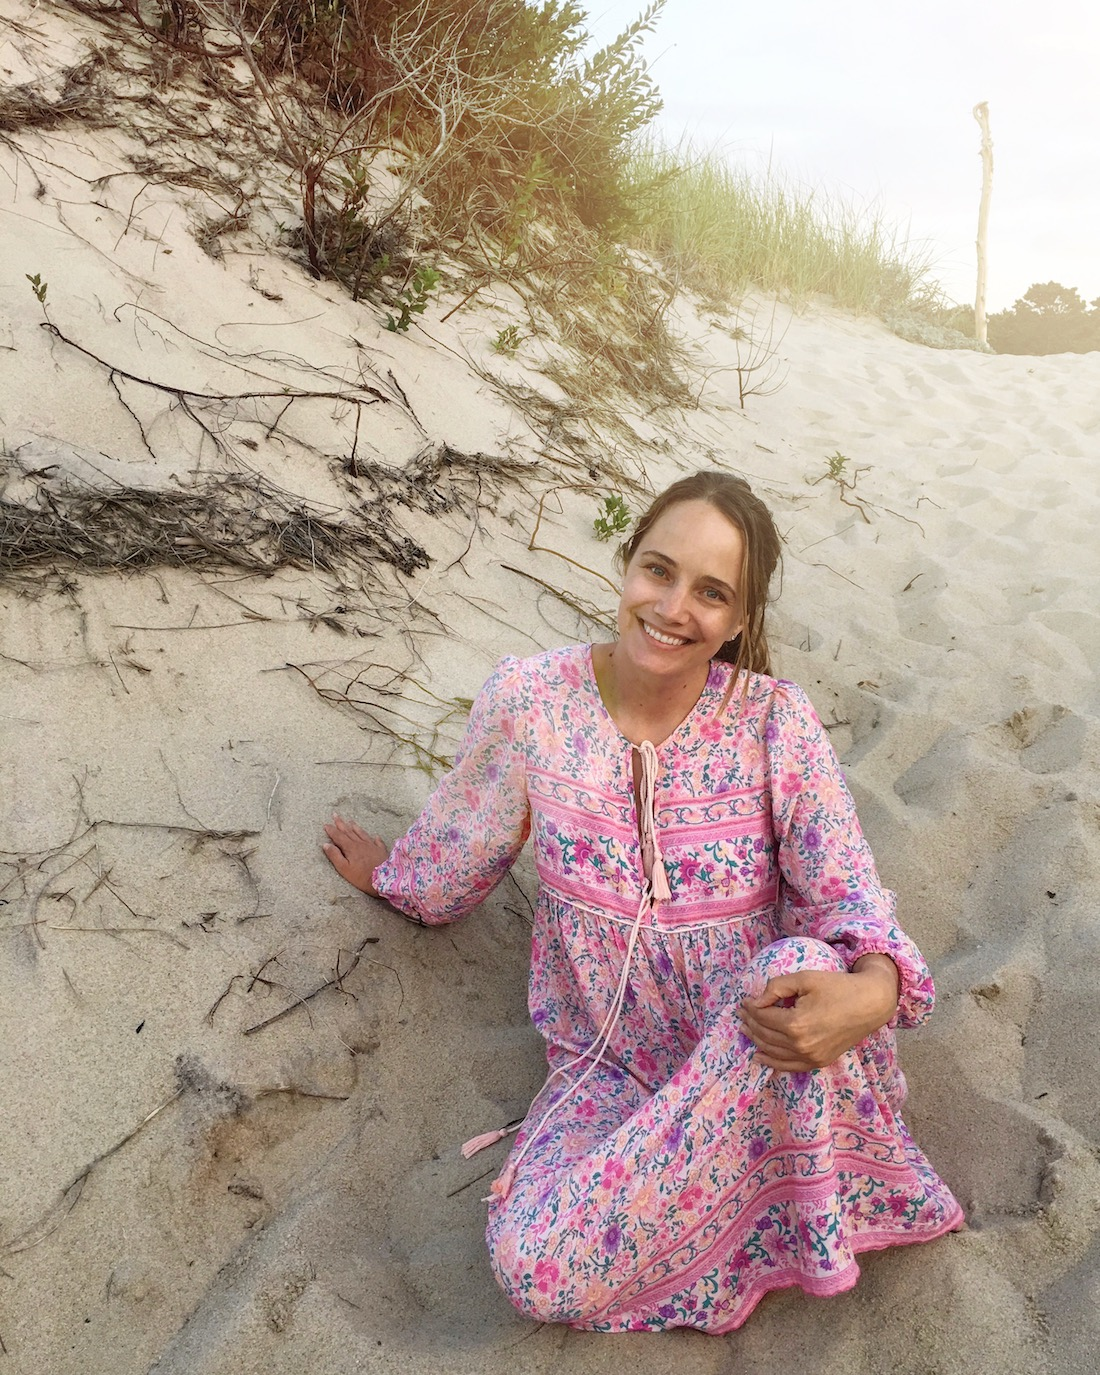 Grace in her nightgown at the beach